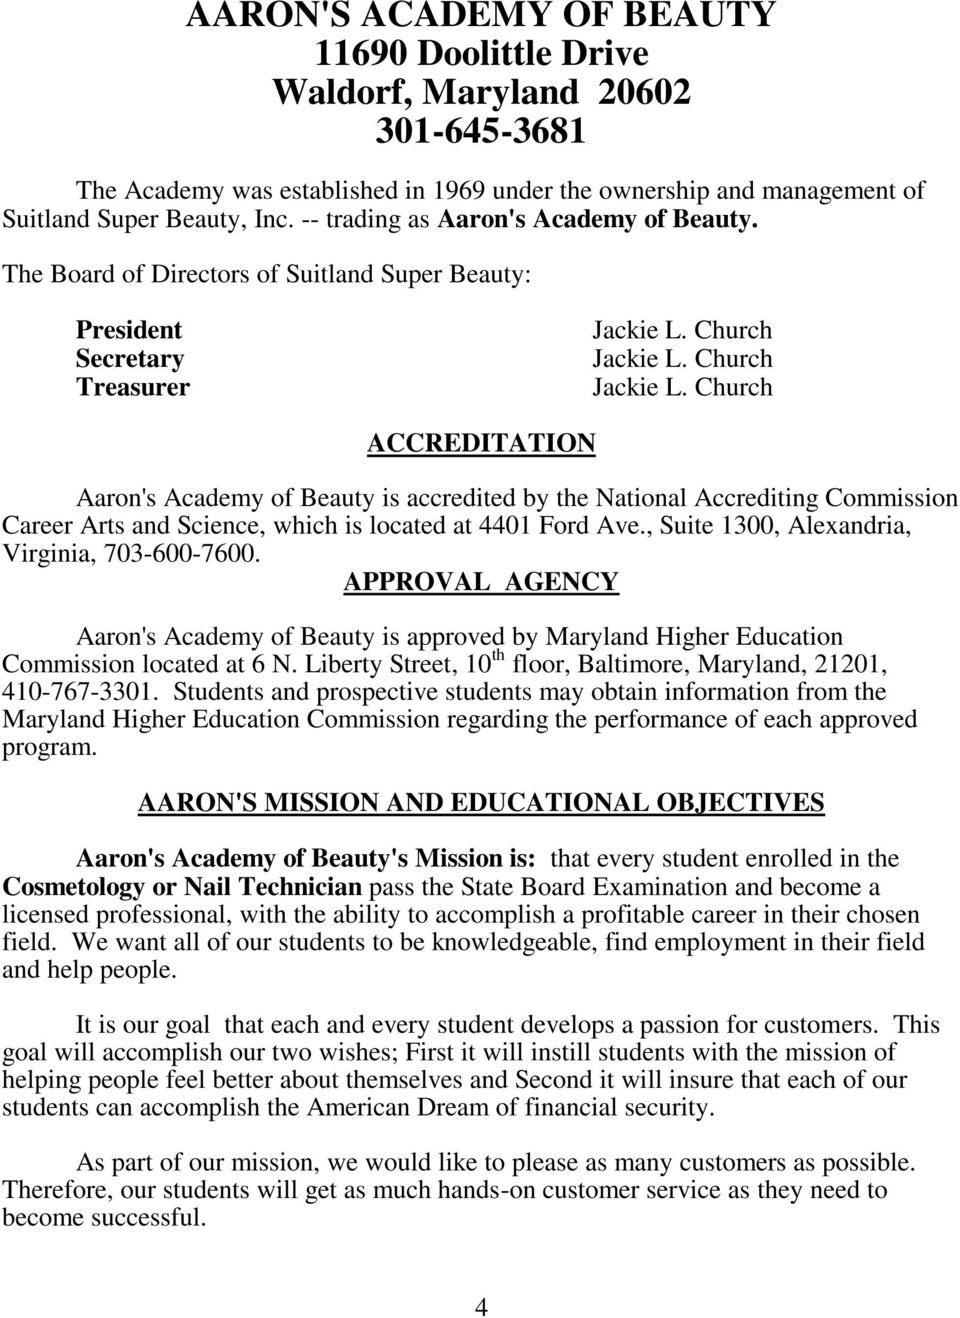 Church Jackie L ACCREDITATION Aarons Academy Of Beauty Is Accredited By The National Accrediting